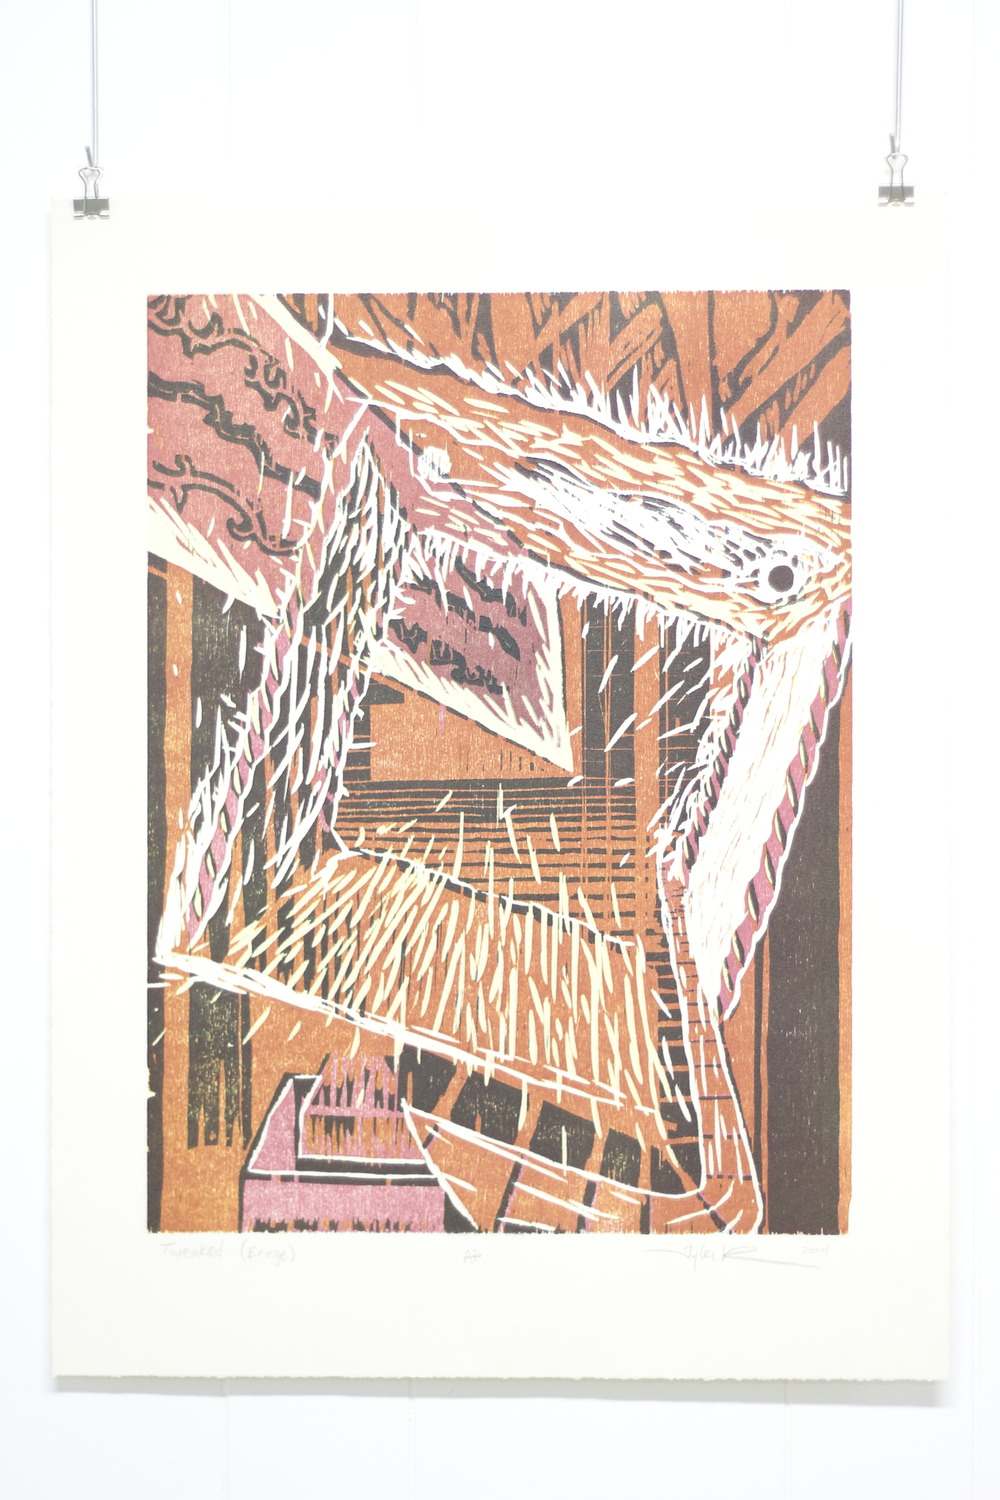 Tweaked (Ernge), 2004, Woodcut, Art 323